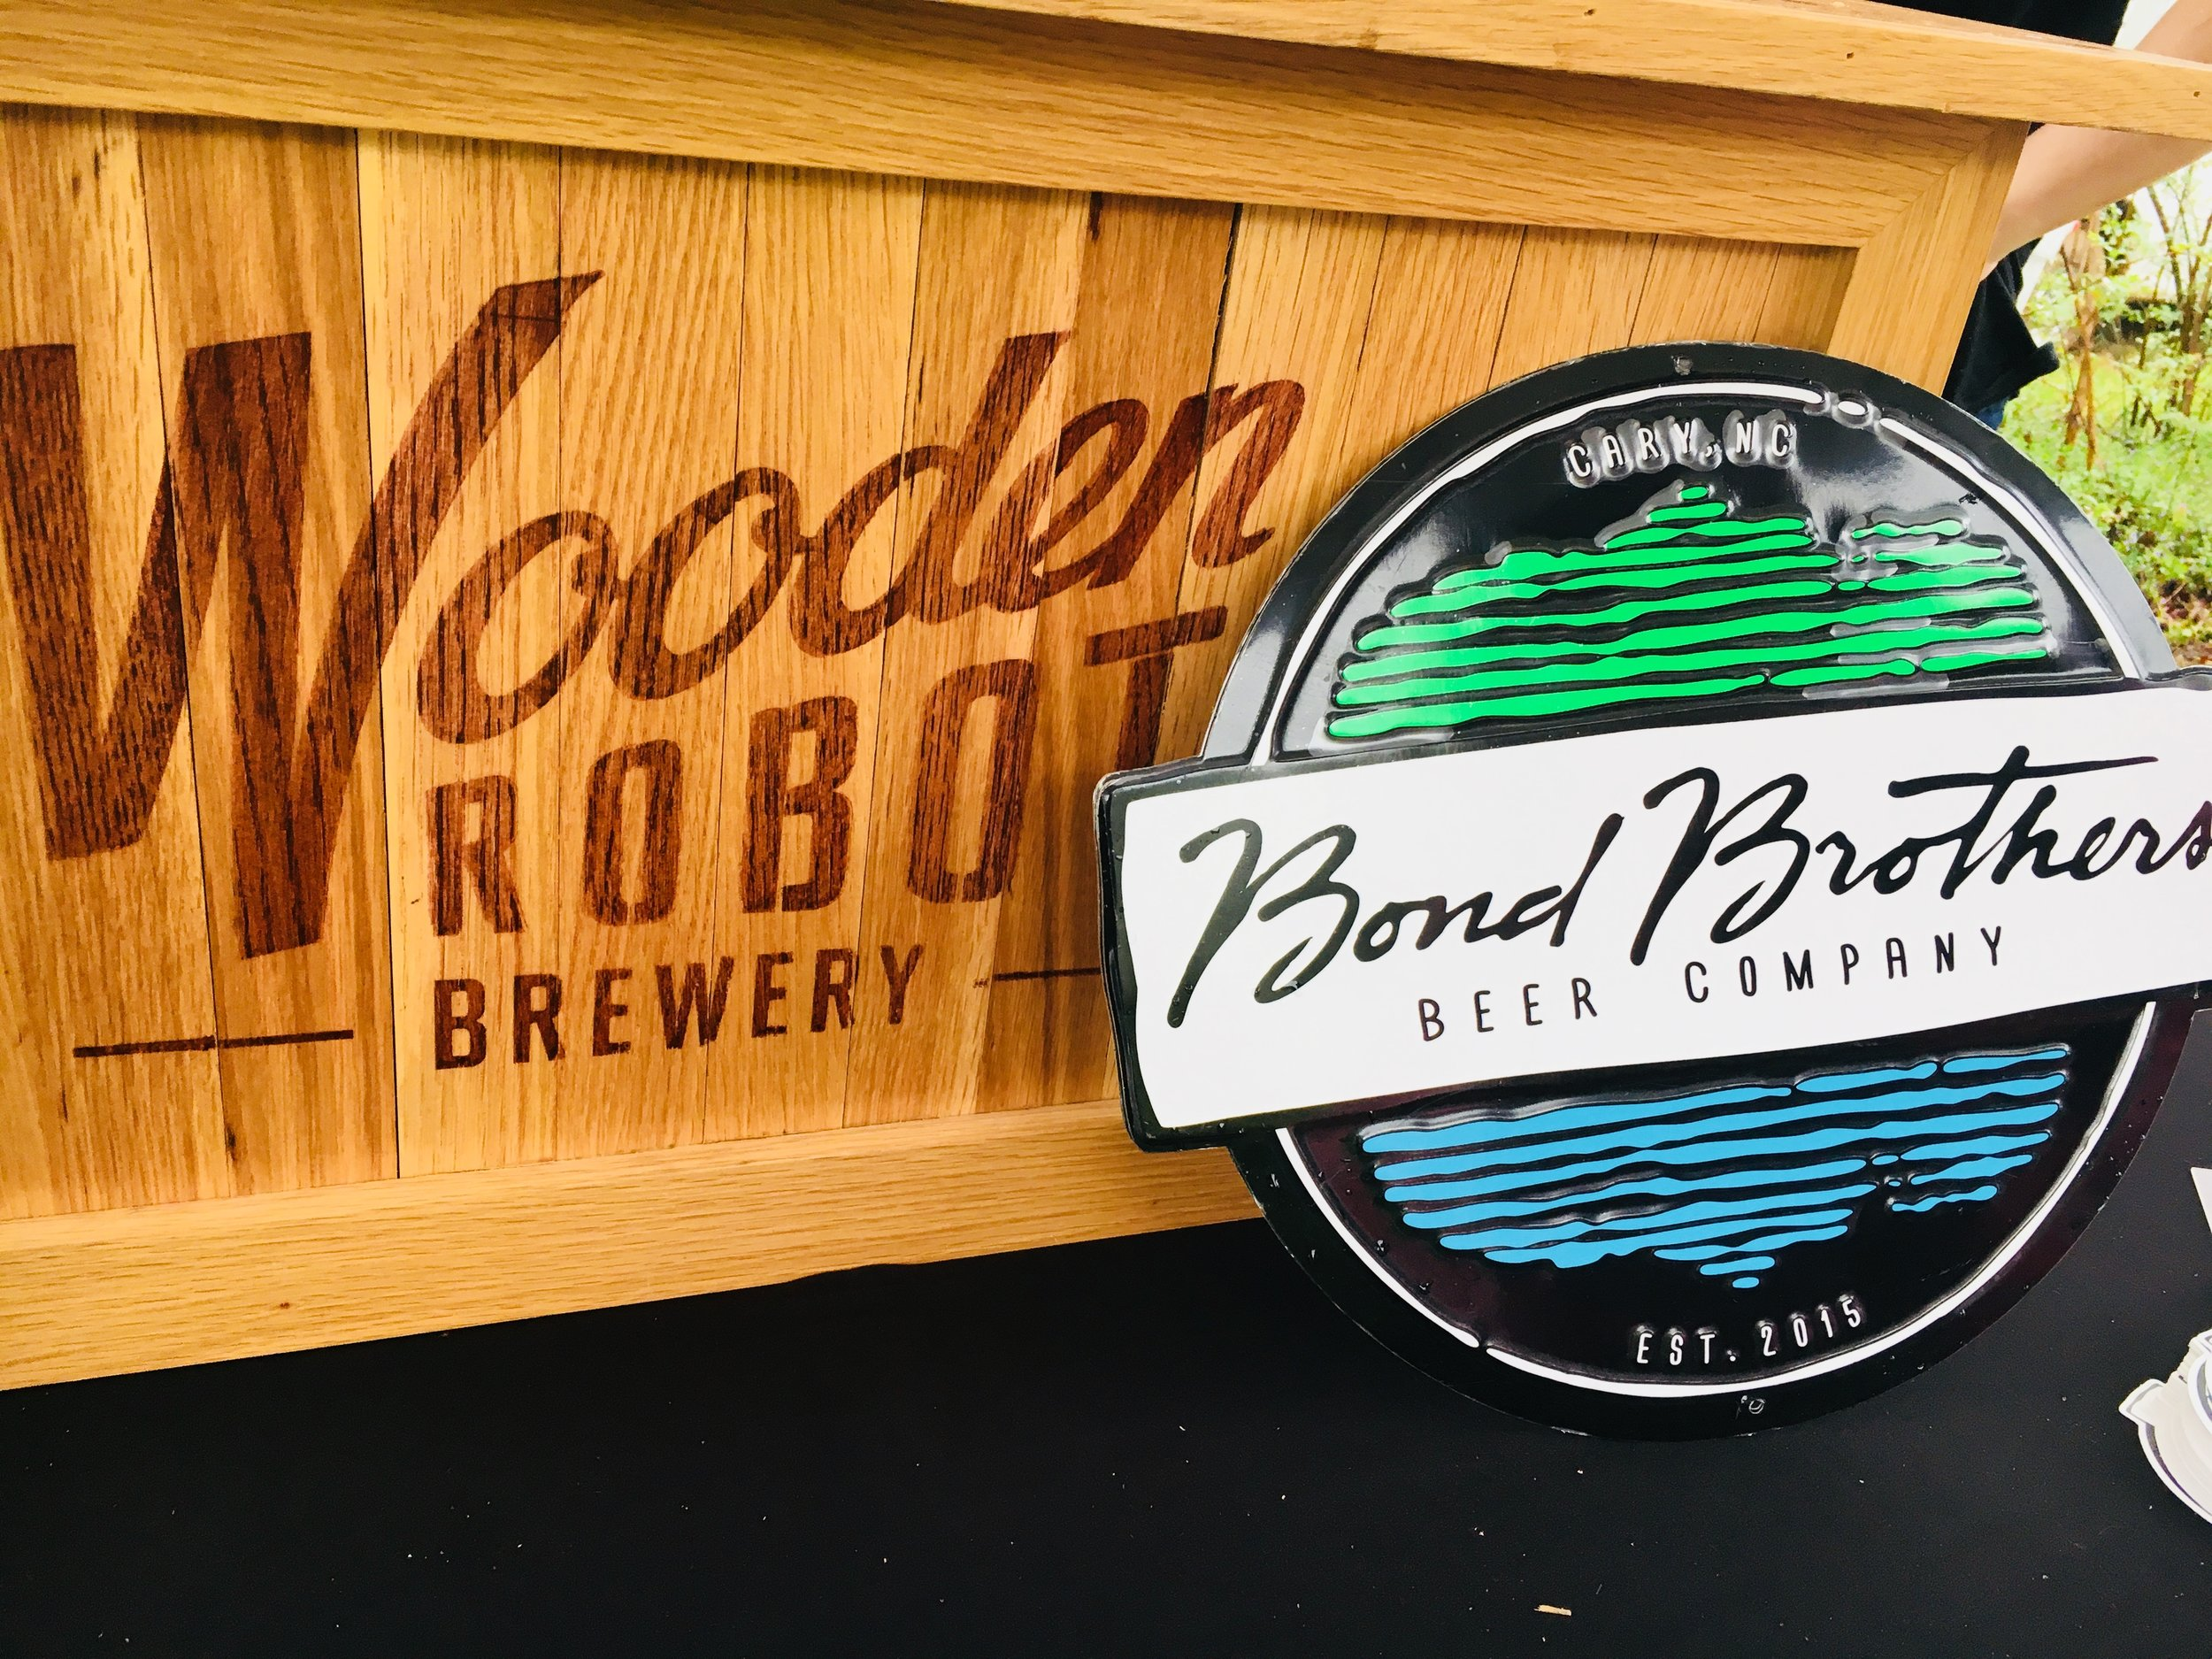 Wooden Robot Brewery + Bond Brothers Beer Company